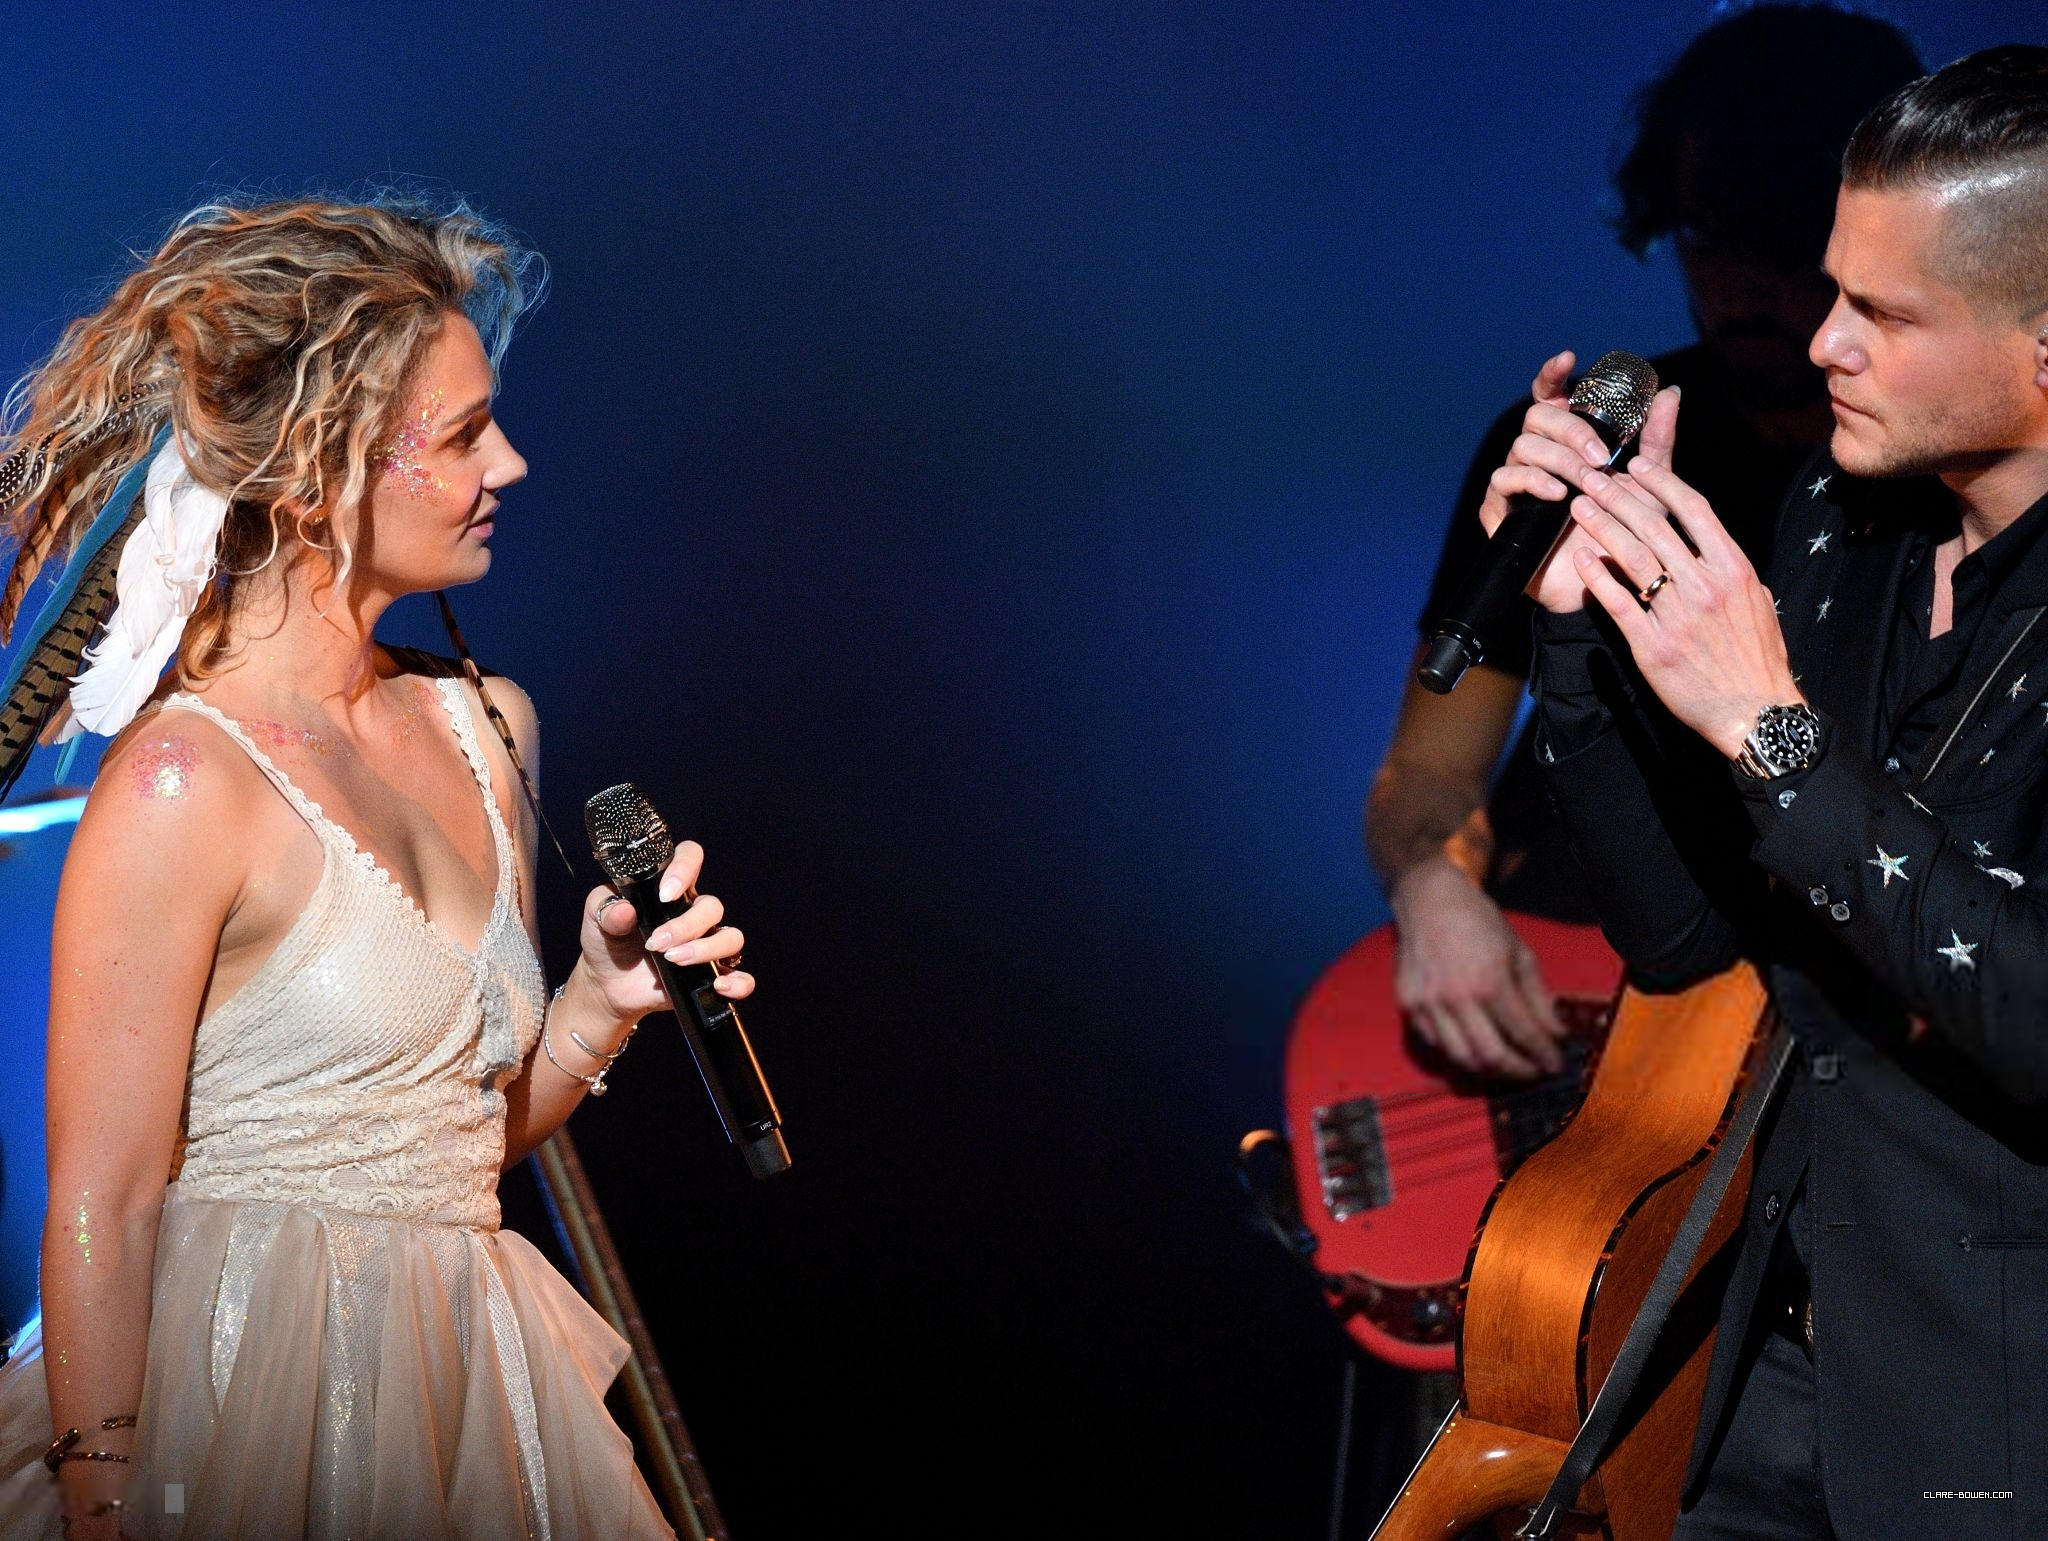 Photos: Clare Bowen UK Solo Tour (London)